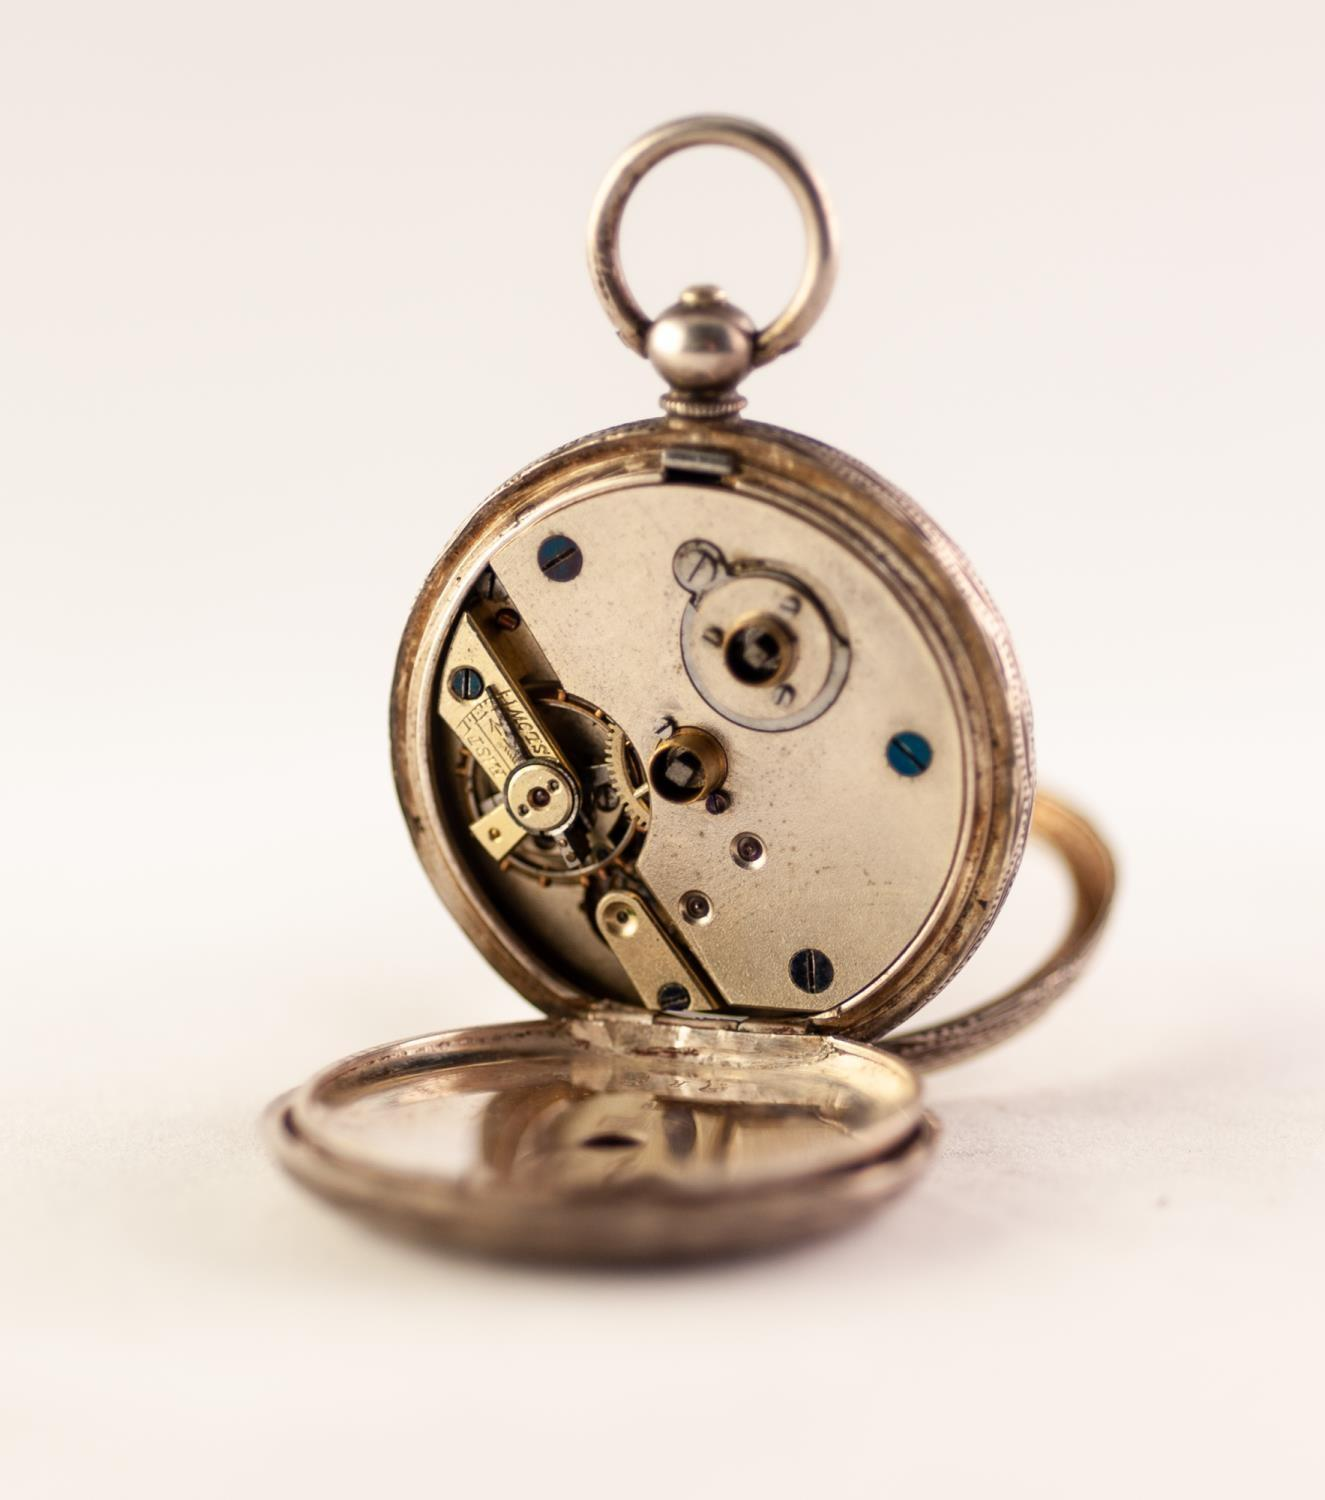 Lot 26 - LADIES OPEN FACE SILVER POCKET WATCH White enamel dial with Roman numerals, gilt detailing, Swiss